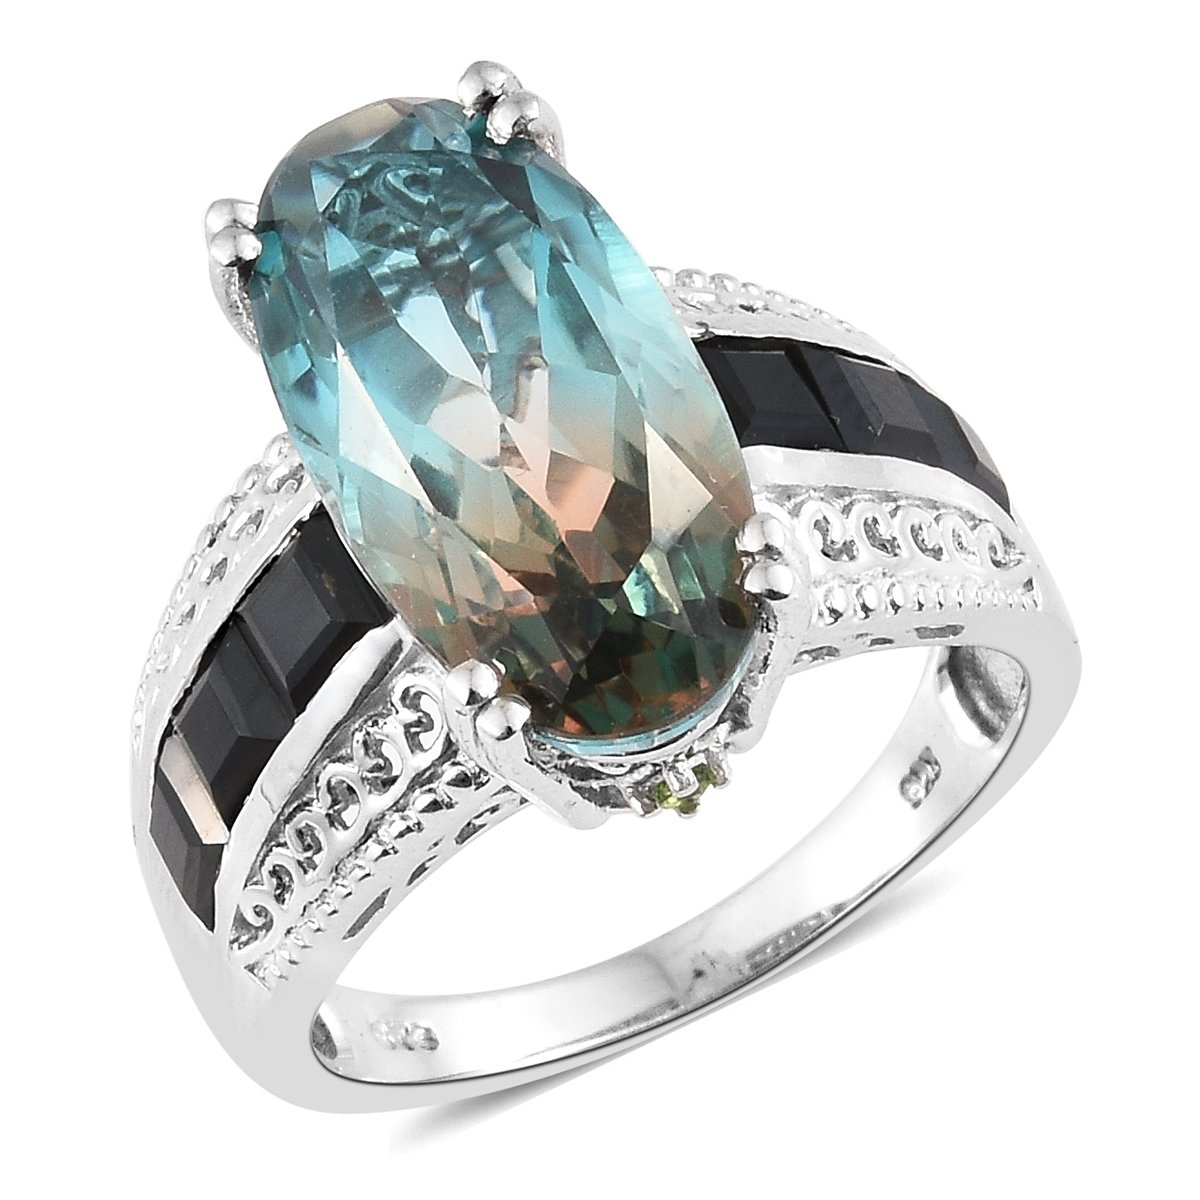 925 Sterling Silver Platinum Plated 10.9 Cttw Oval Aqua Terra Costa Quartz, Multi Gemstone Ring Size 10